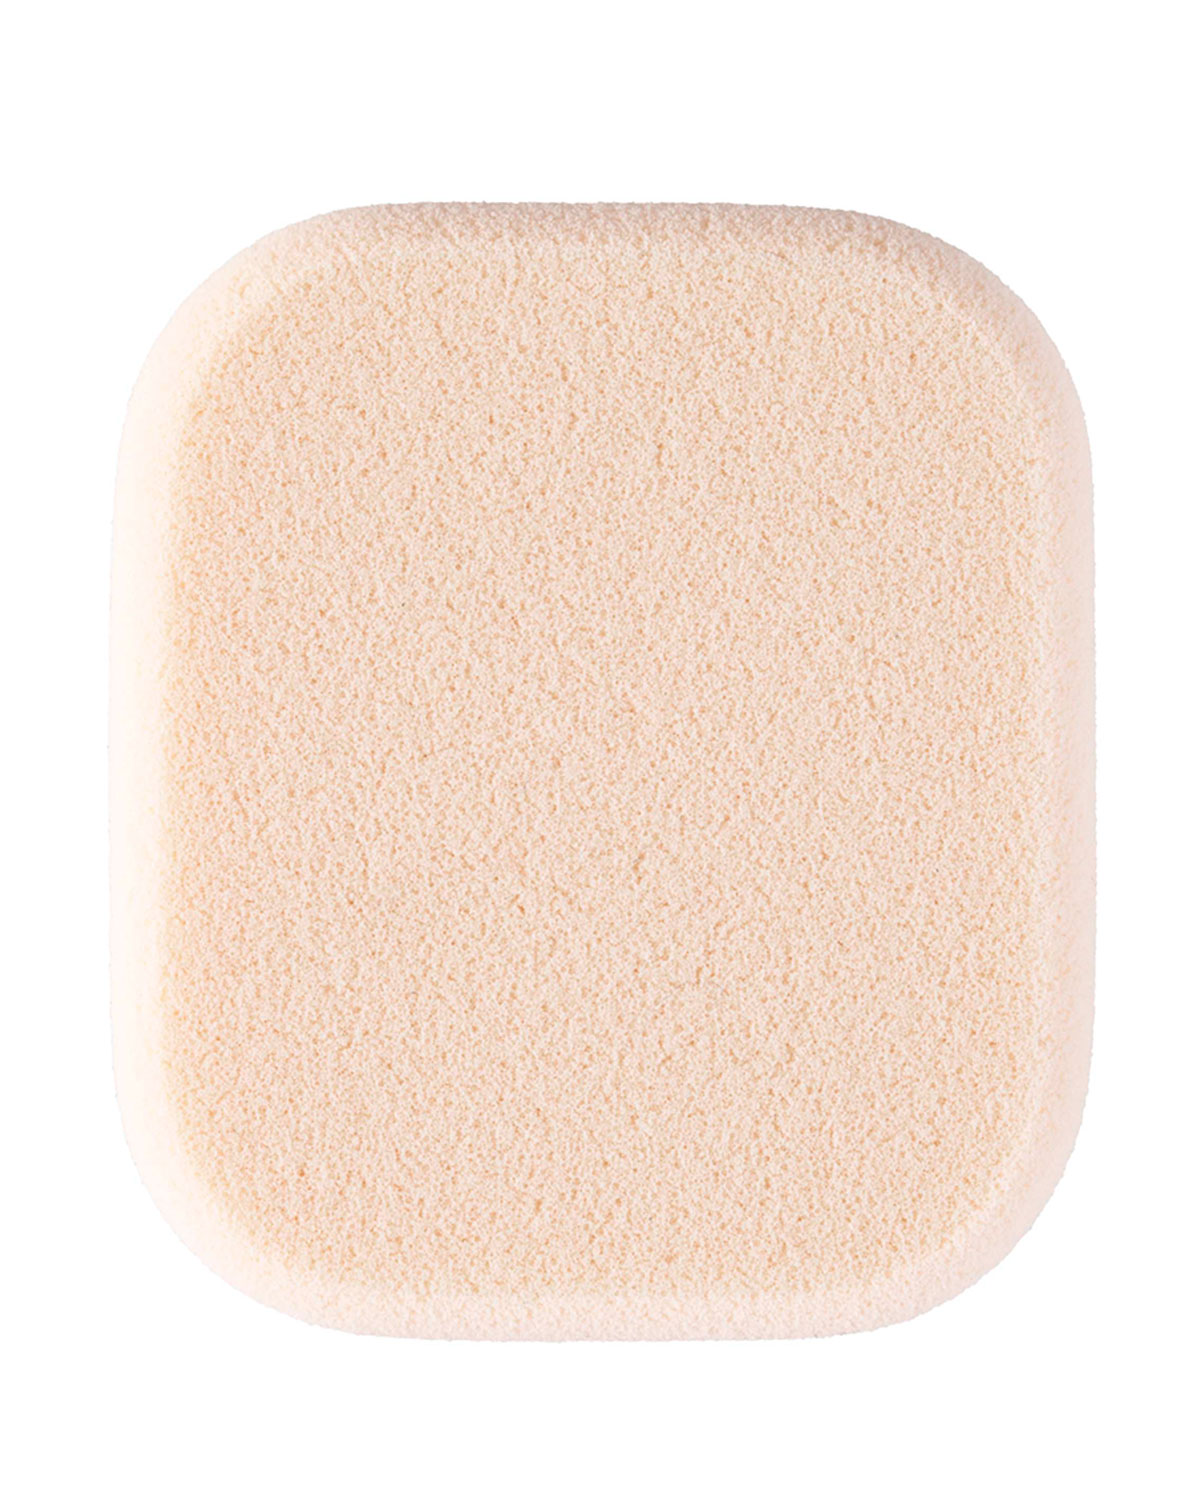 CLE DE PEAU Cle De Peau Beaute Radiant Powder Foundation Sponge